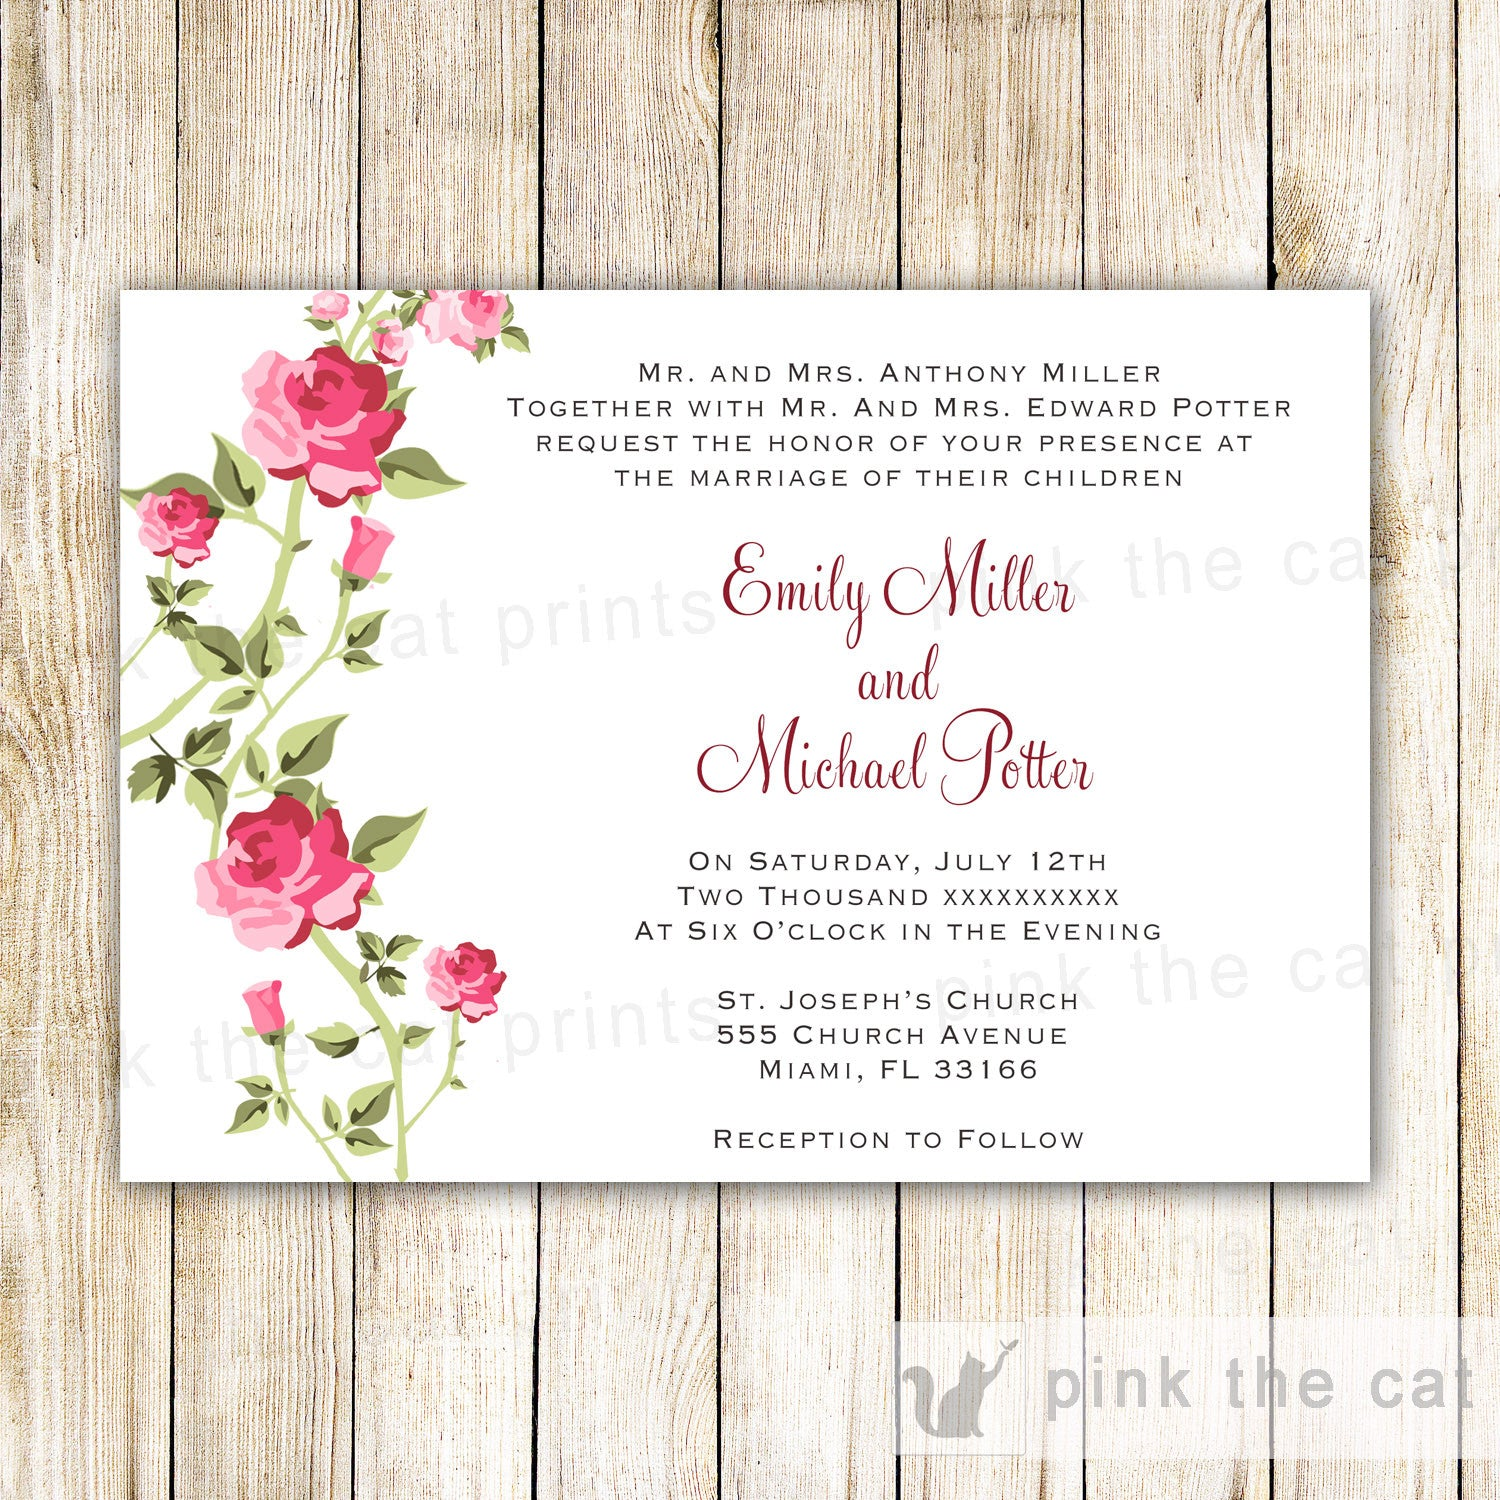 Wedding Invitations & RSVP Cards Roses Pink Mint – Pink The Cat